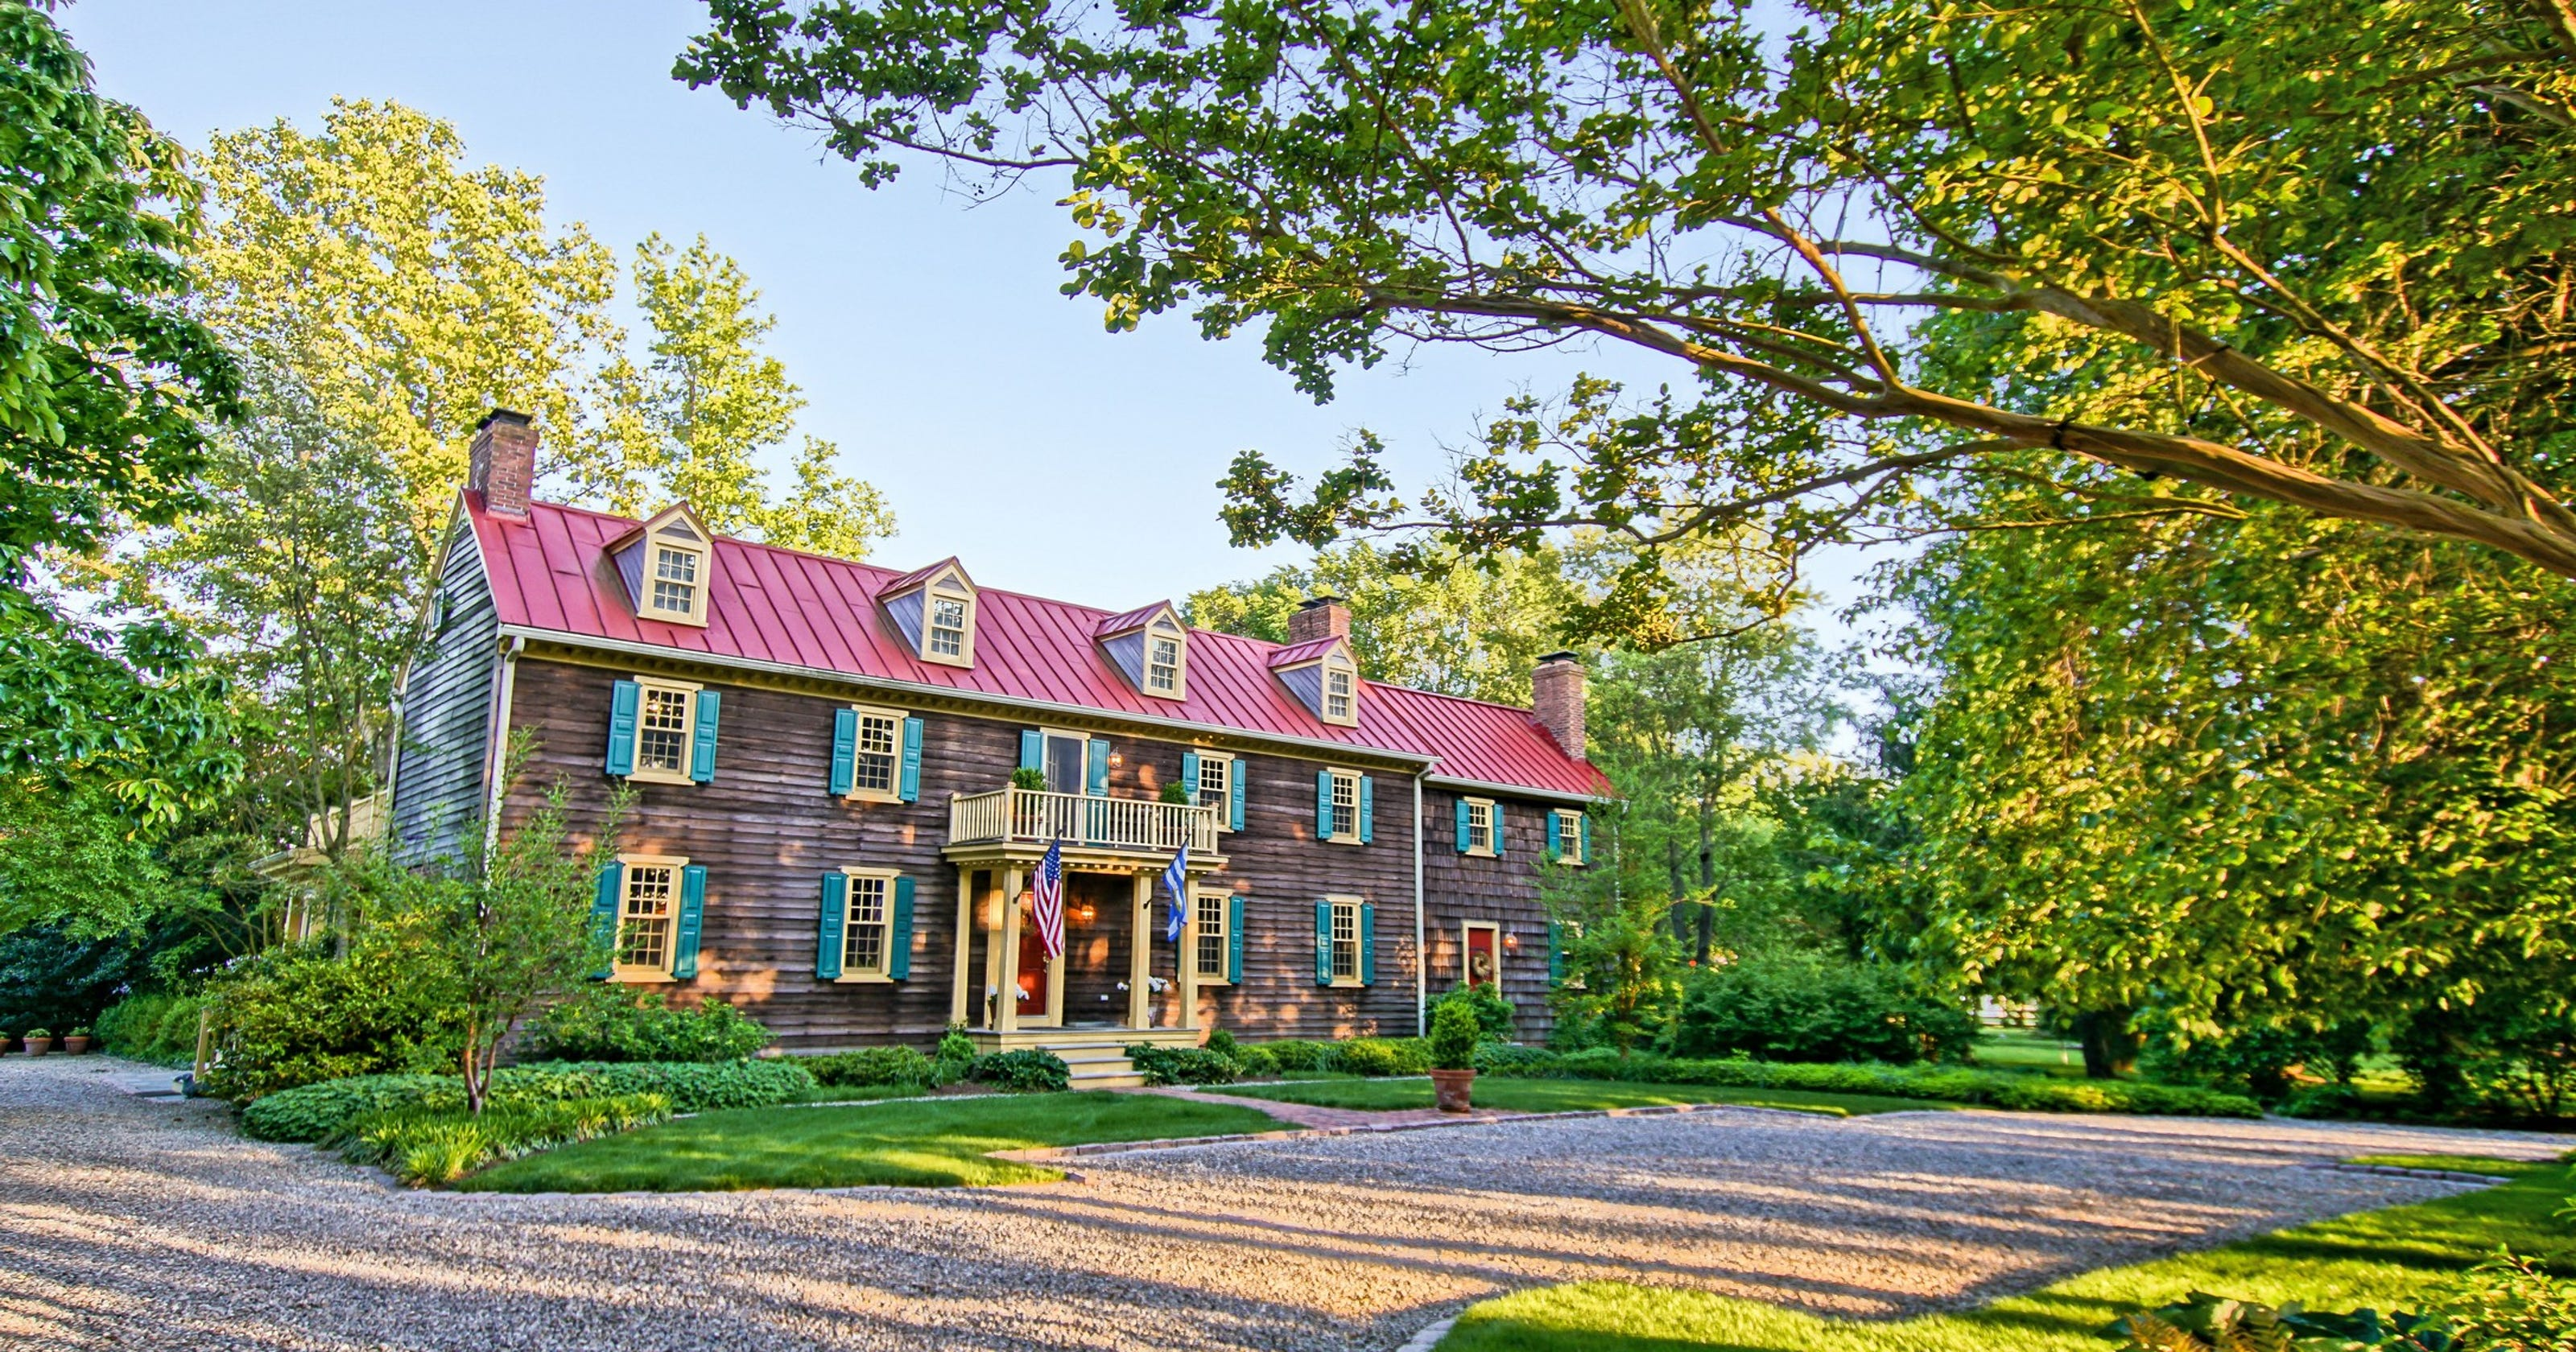 Peaceable estate in Lewes features historic depot-turned